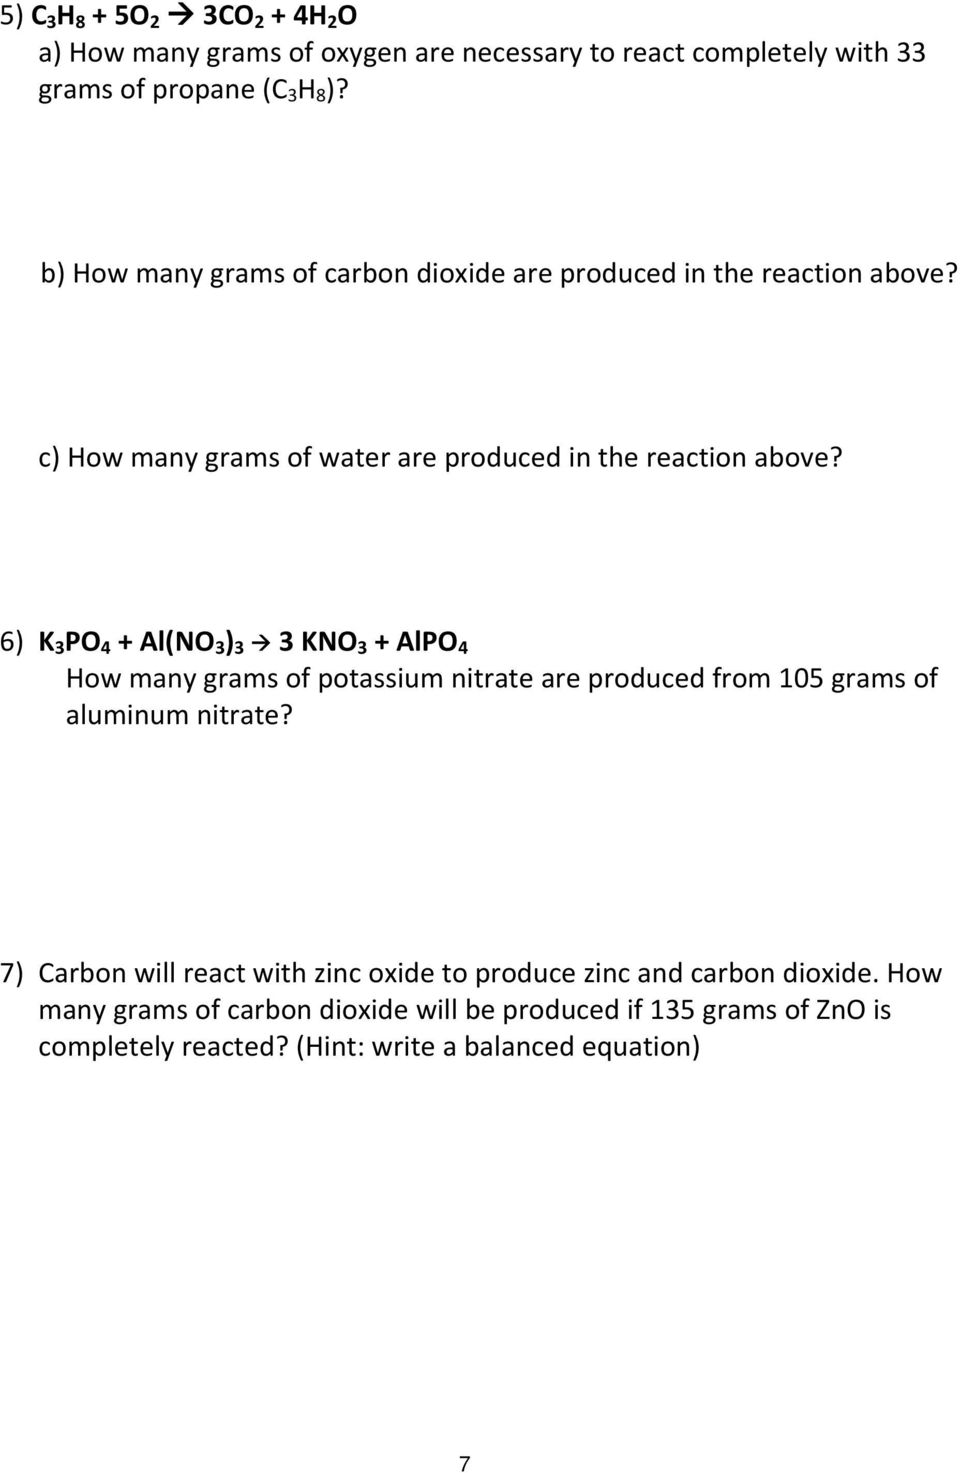 6) K 3 PO 4 + Al(NO 3 ) 3 3 KNO 3 + AlPO 4 How many grams of potassium nitrate are produced from 105 grams of aluminum nitrate?